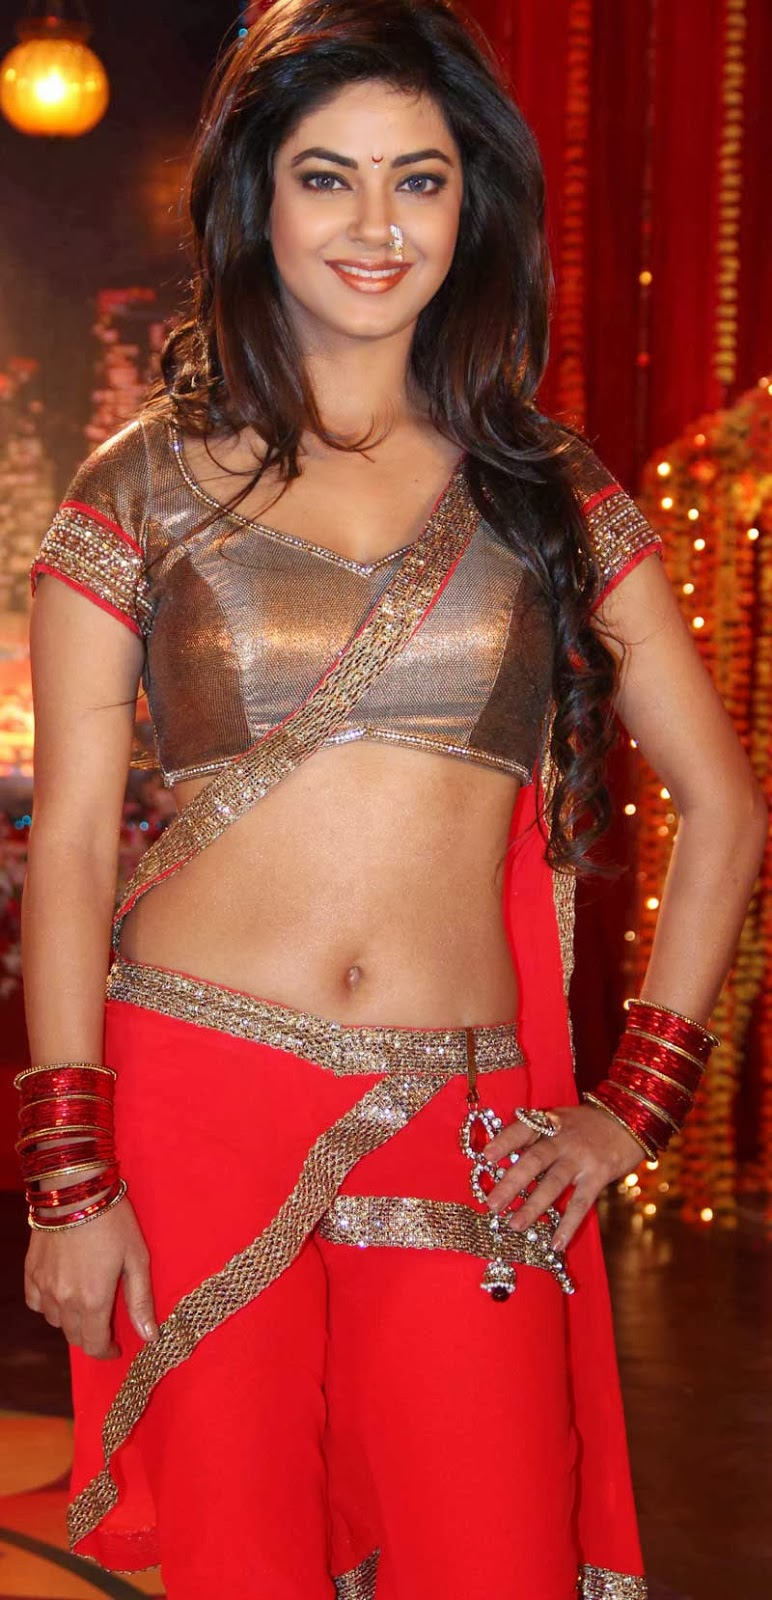 Meera Chopra Latest Hot Stills From Gang Of Ghosts Movie - Movie ...